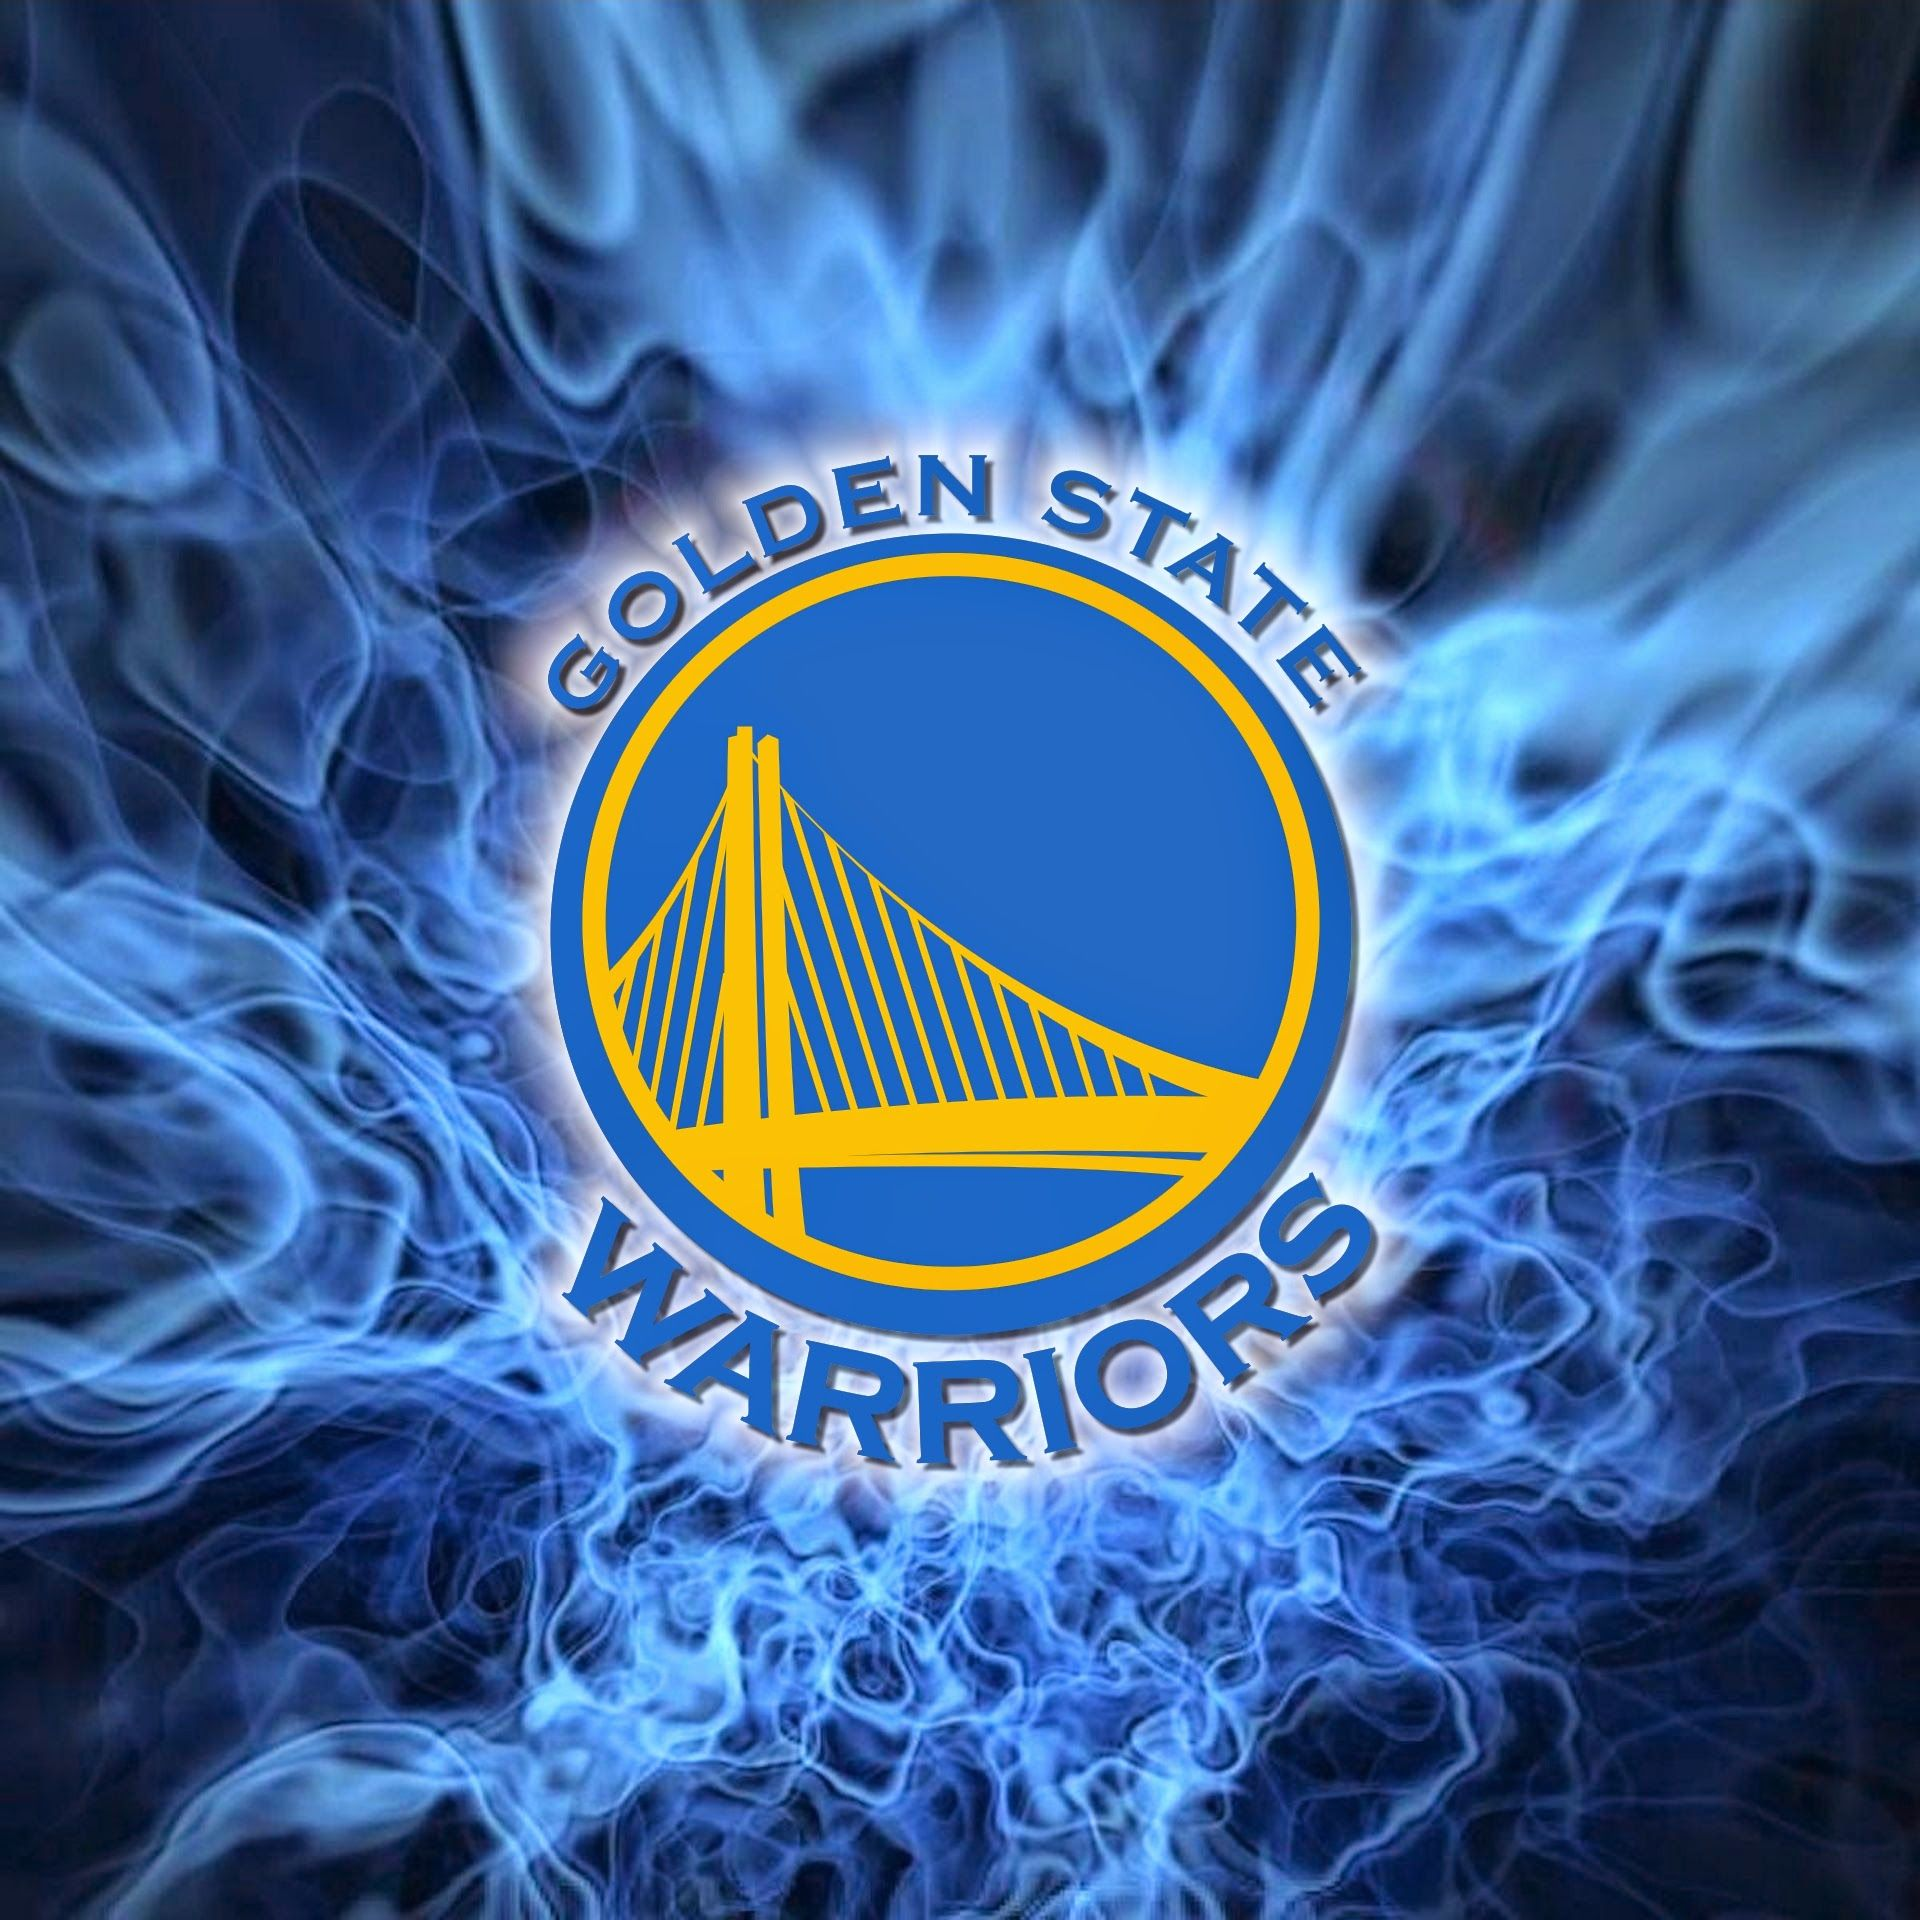 Golden State Warriors Iphone Wallpaper Golden State Warriors Wallpaper Golden State Warriors Pictures Warriors Wallpaper